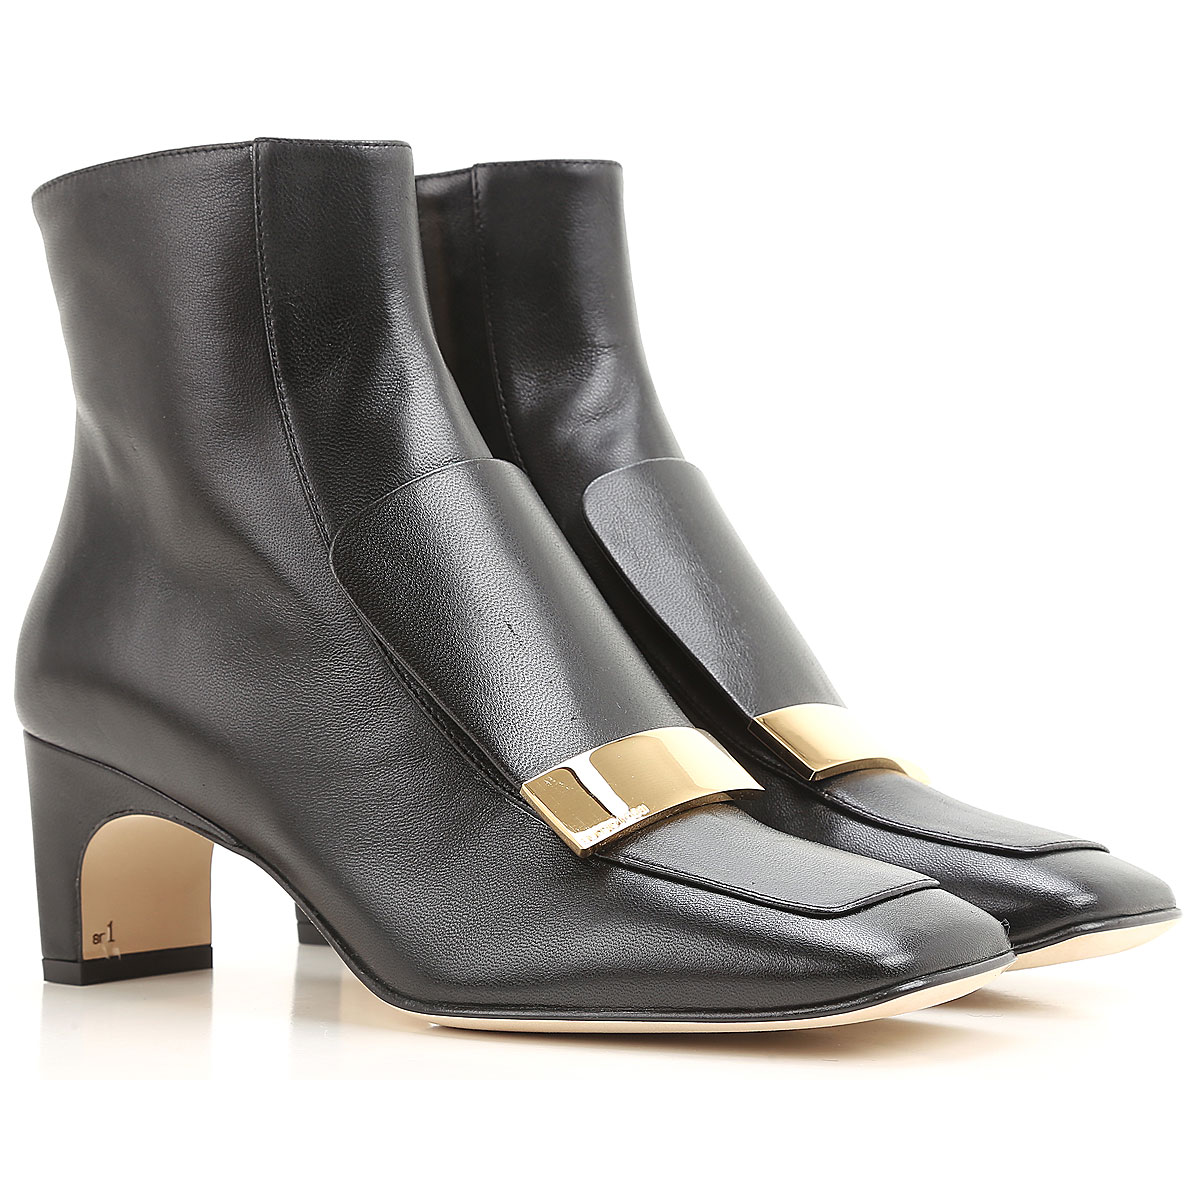 Image of Sergio Rossi Boots for Women, Booties, Black, Leather, 2017, 10 6.5 7 8.5